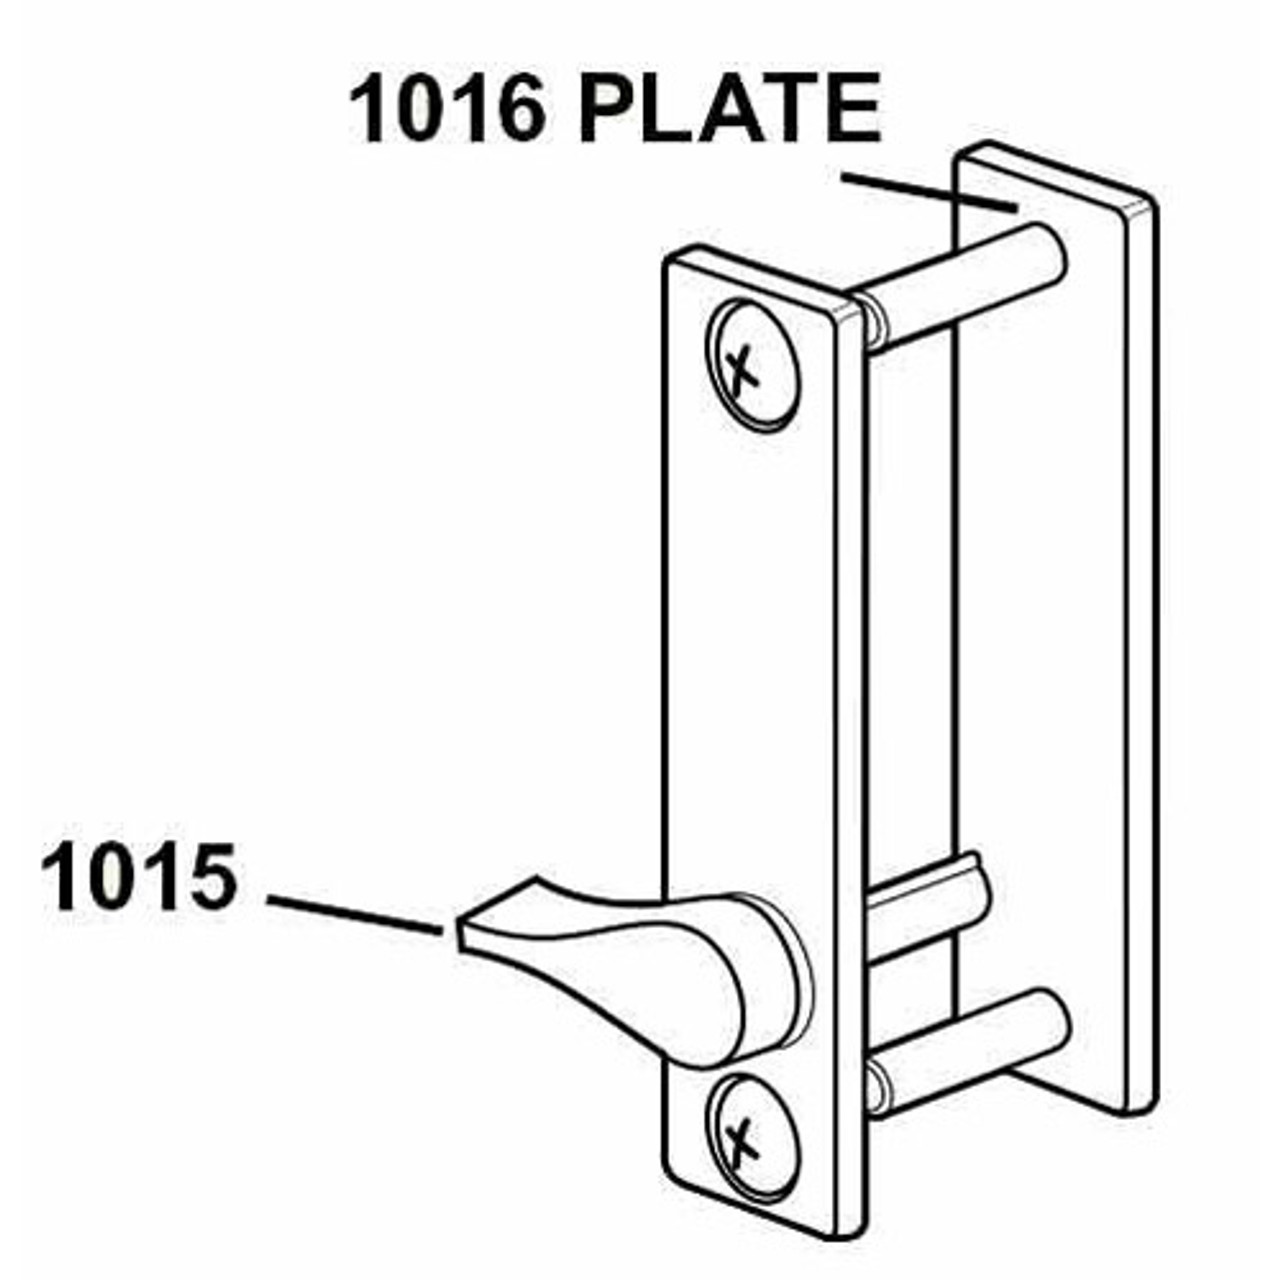 1016-130 Adams Rite Outside Escutcheon Trim in Aluminum